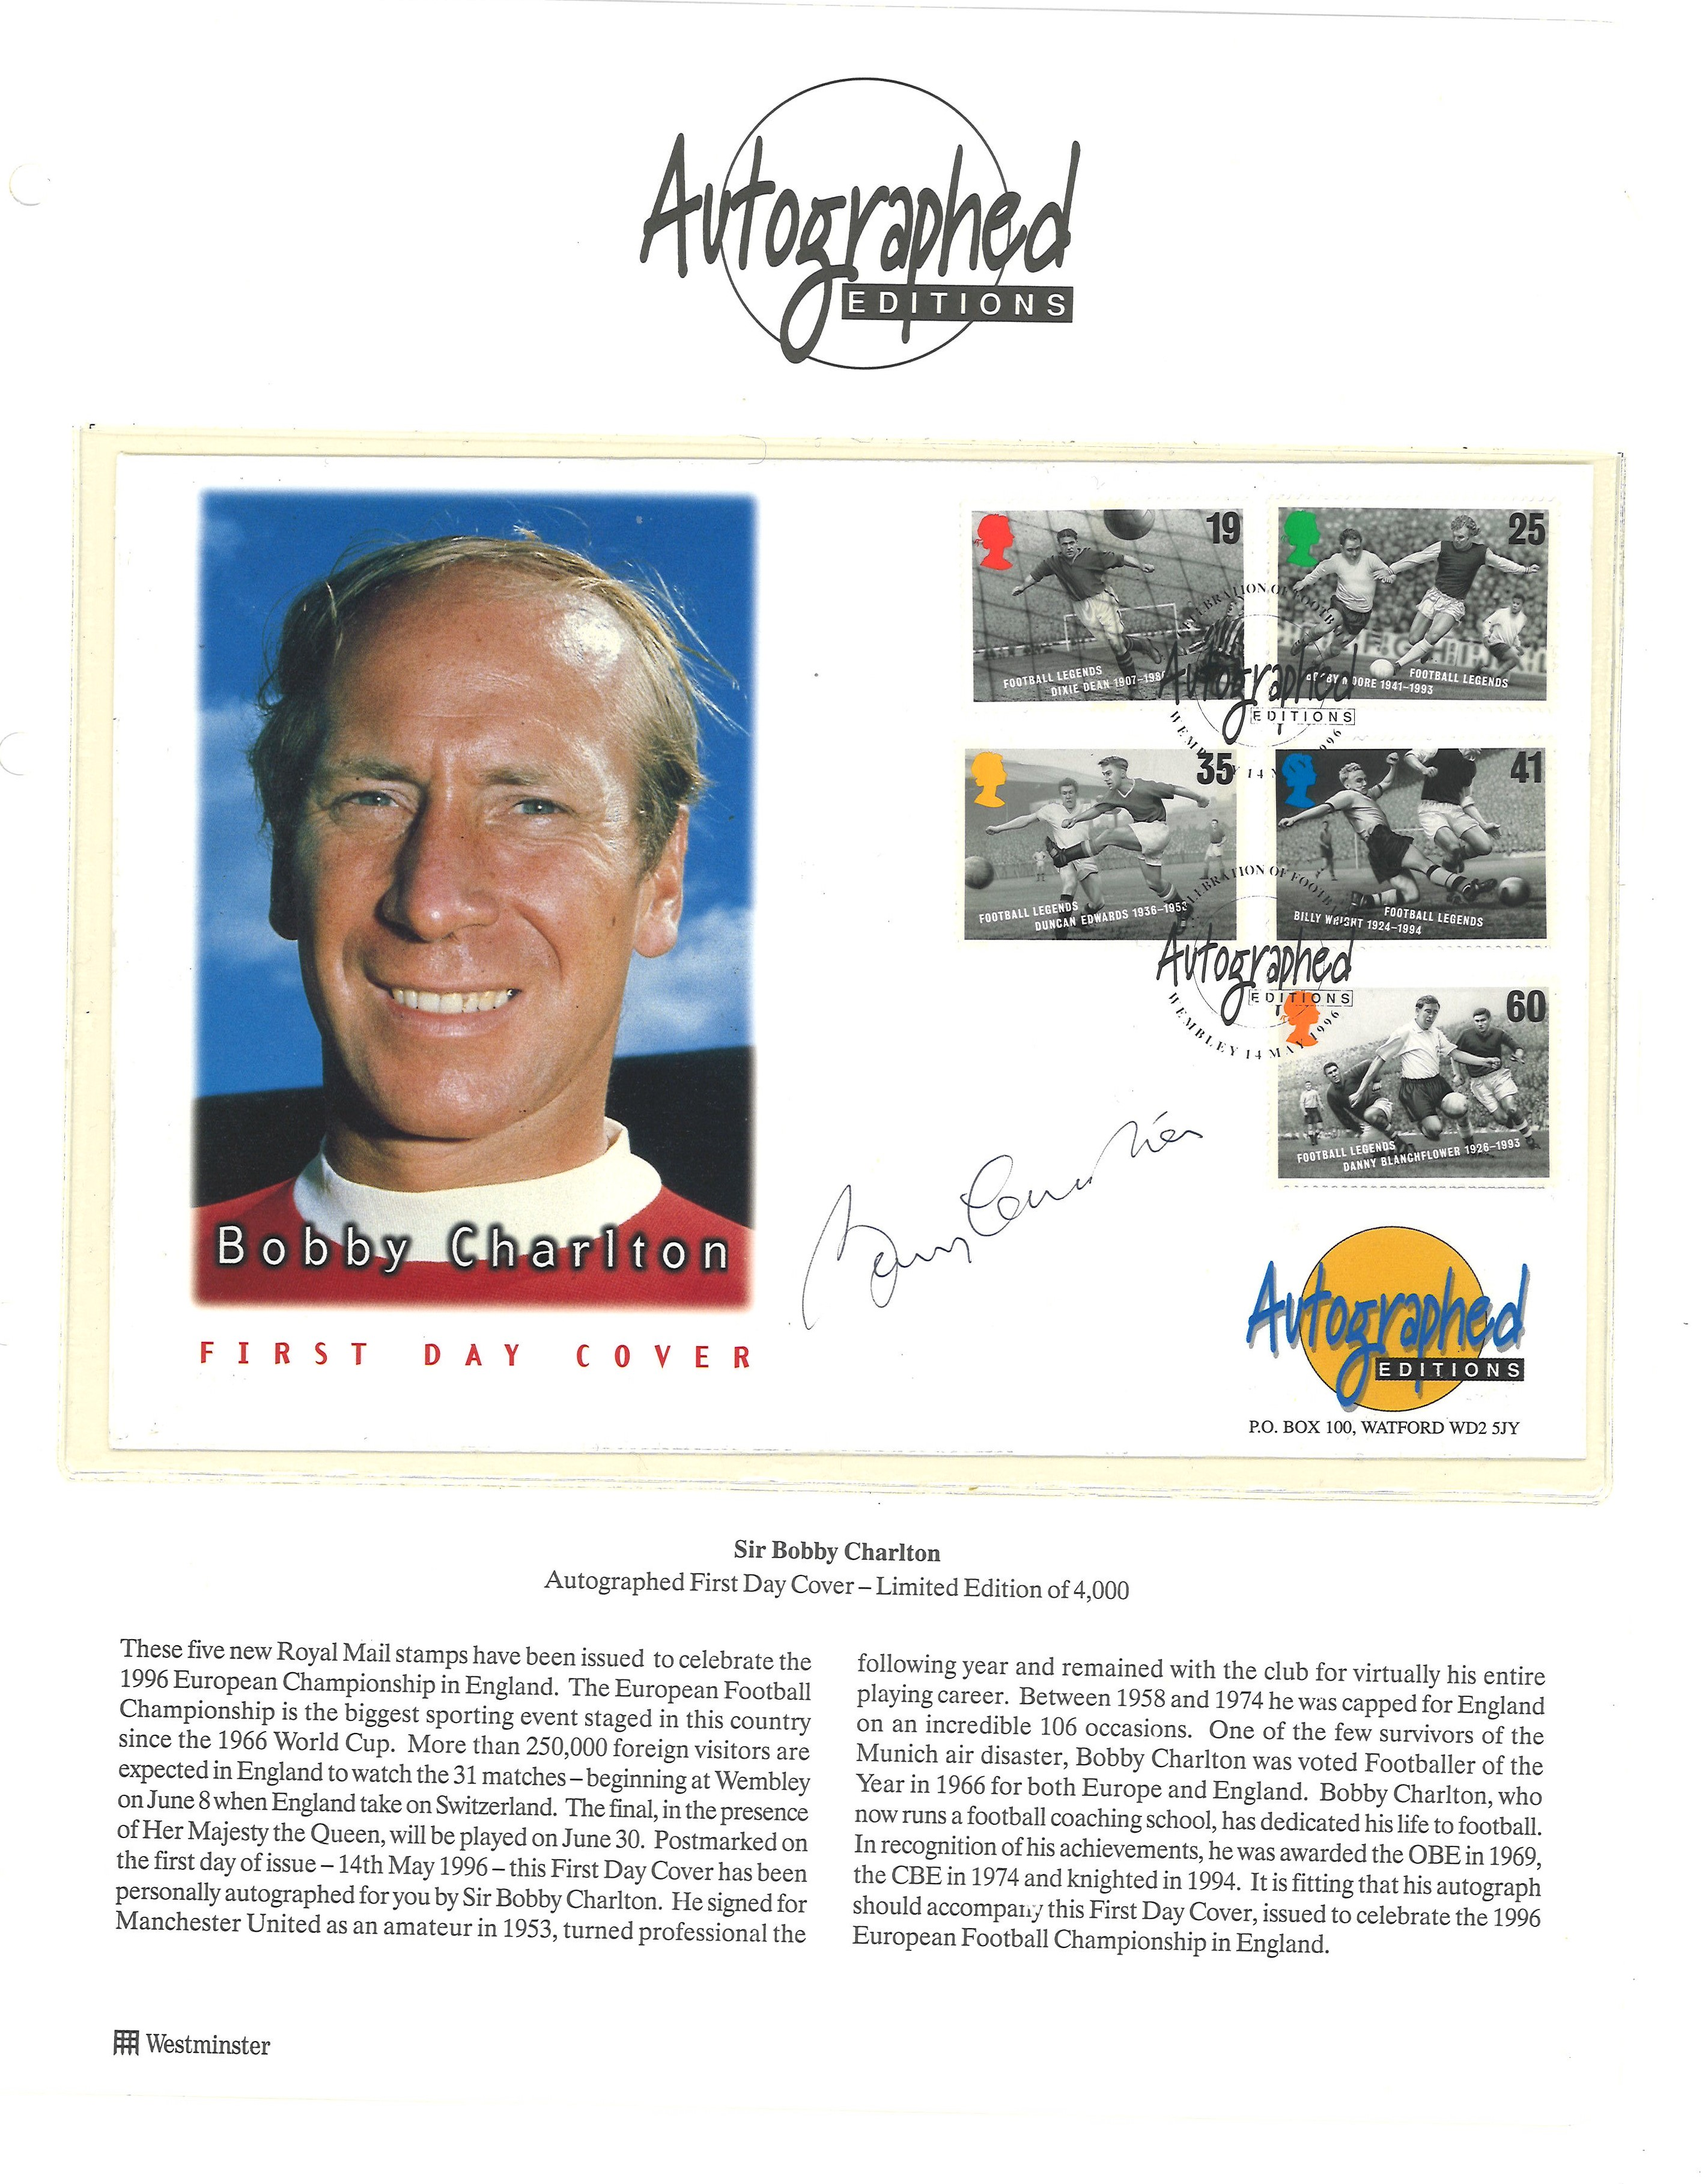 Bobby Charlton signed Autographed Editions FDC pm Wembley 14th May 1996. Good condition. All